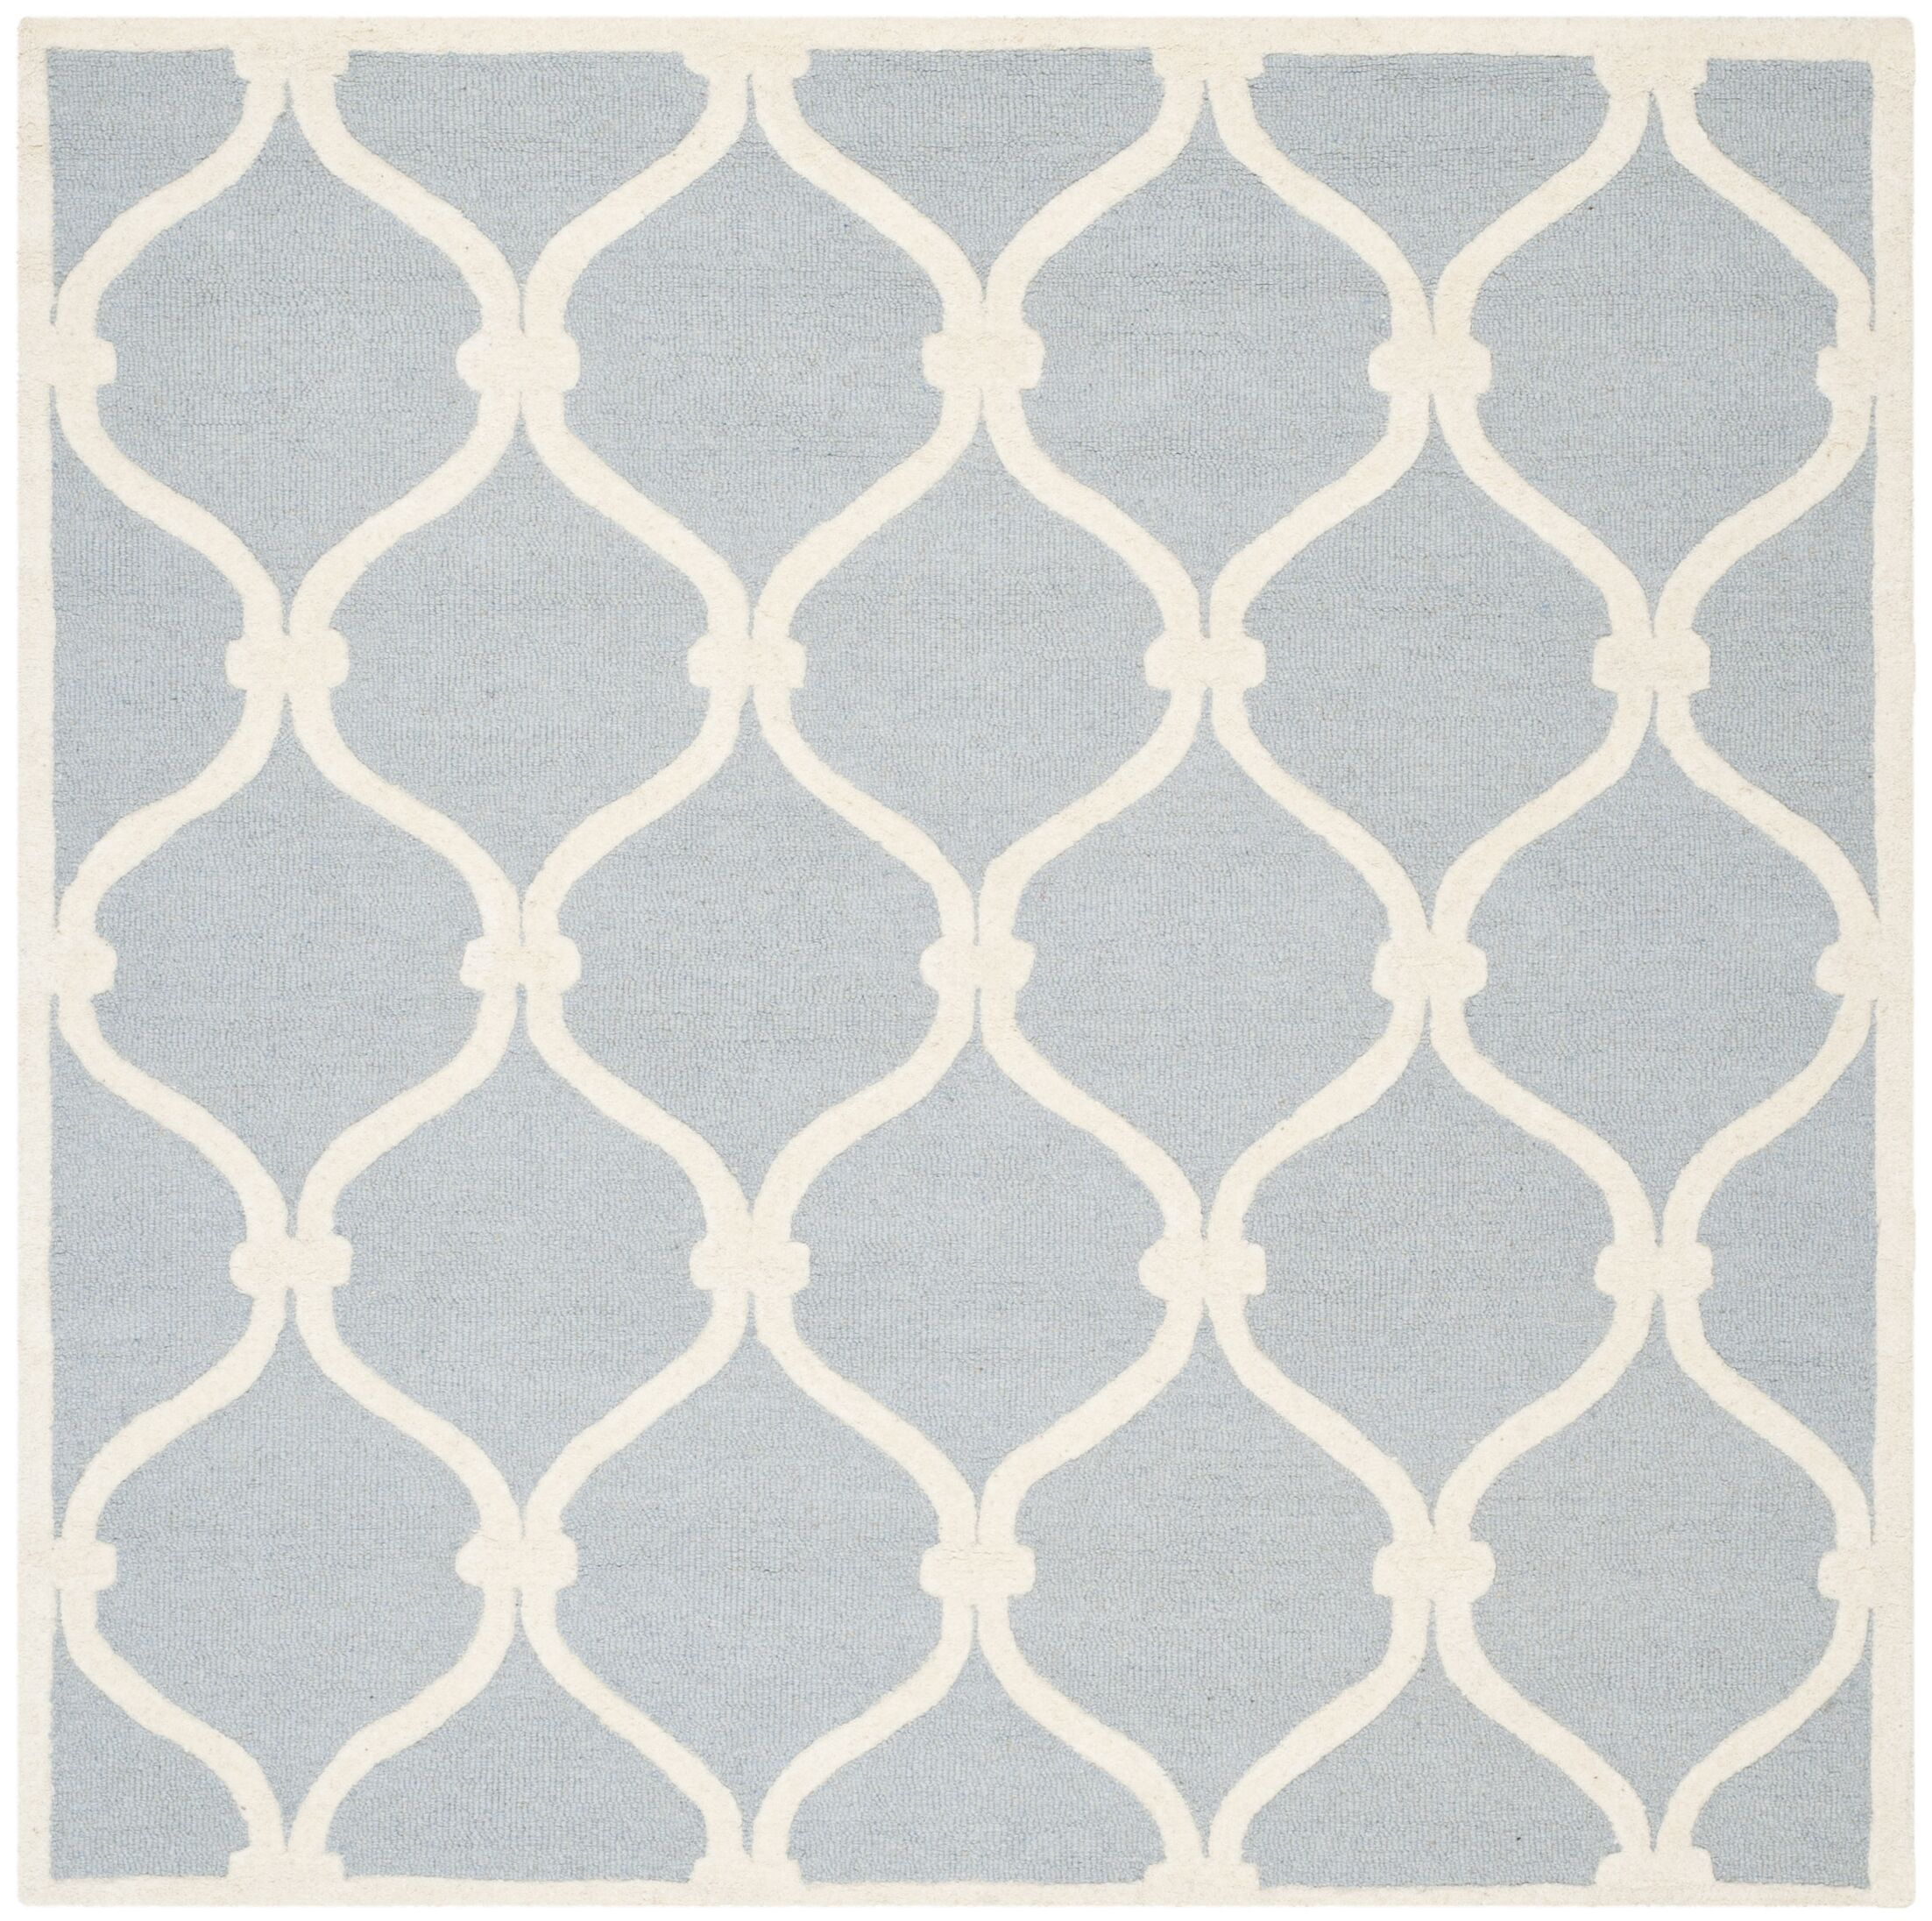 Martins Hand-Tufted Wool Blue Area Rug Rug Size: Square 6'